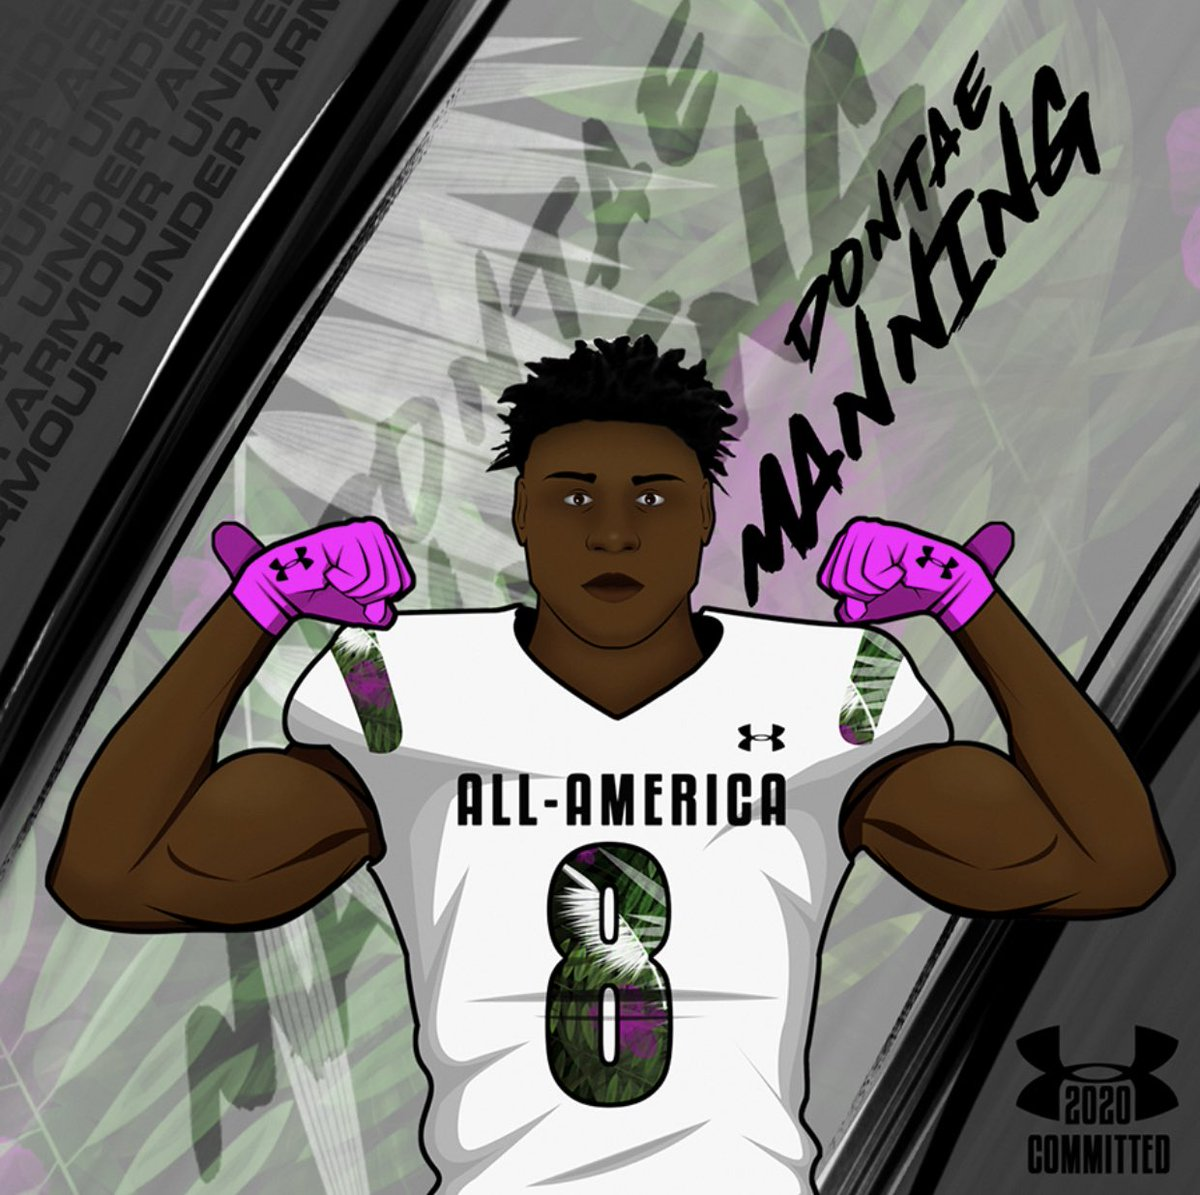 It is TRULY A DREAM COME TRUE to announce I am committing to play in the 2020 Under Armour All-American Game! #WEWILL @DemetricDWarren @AllAmericaGame